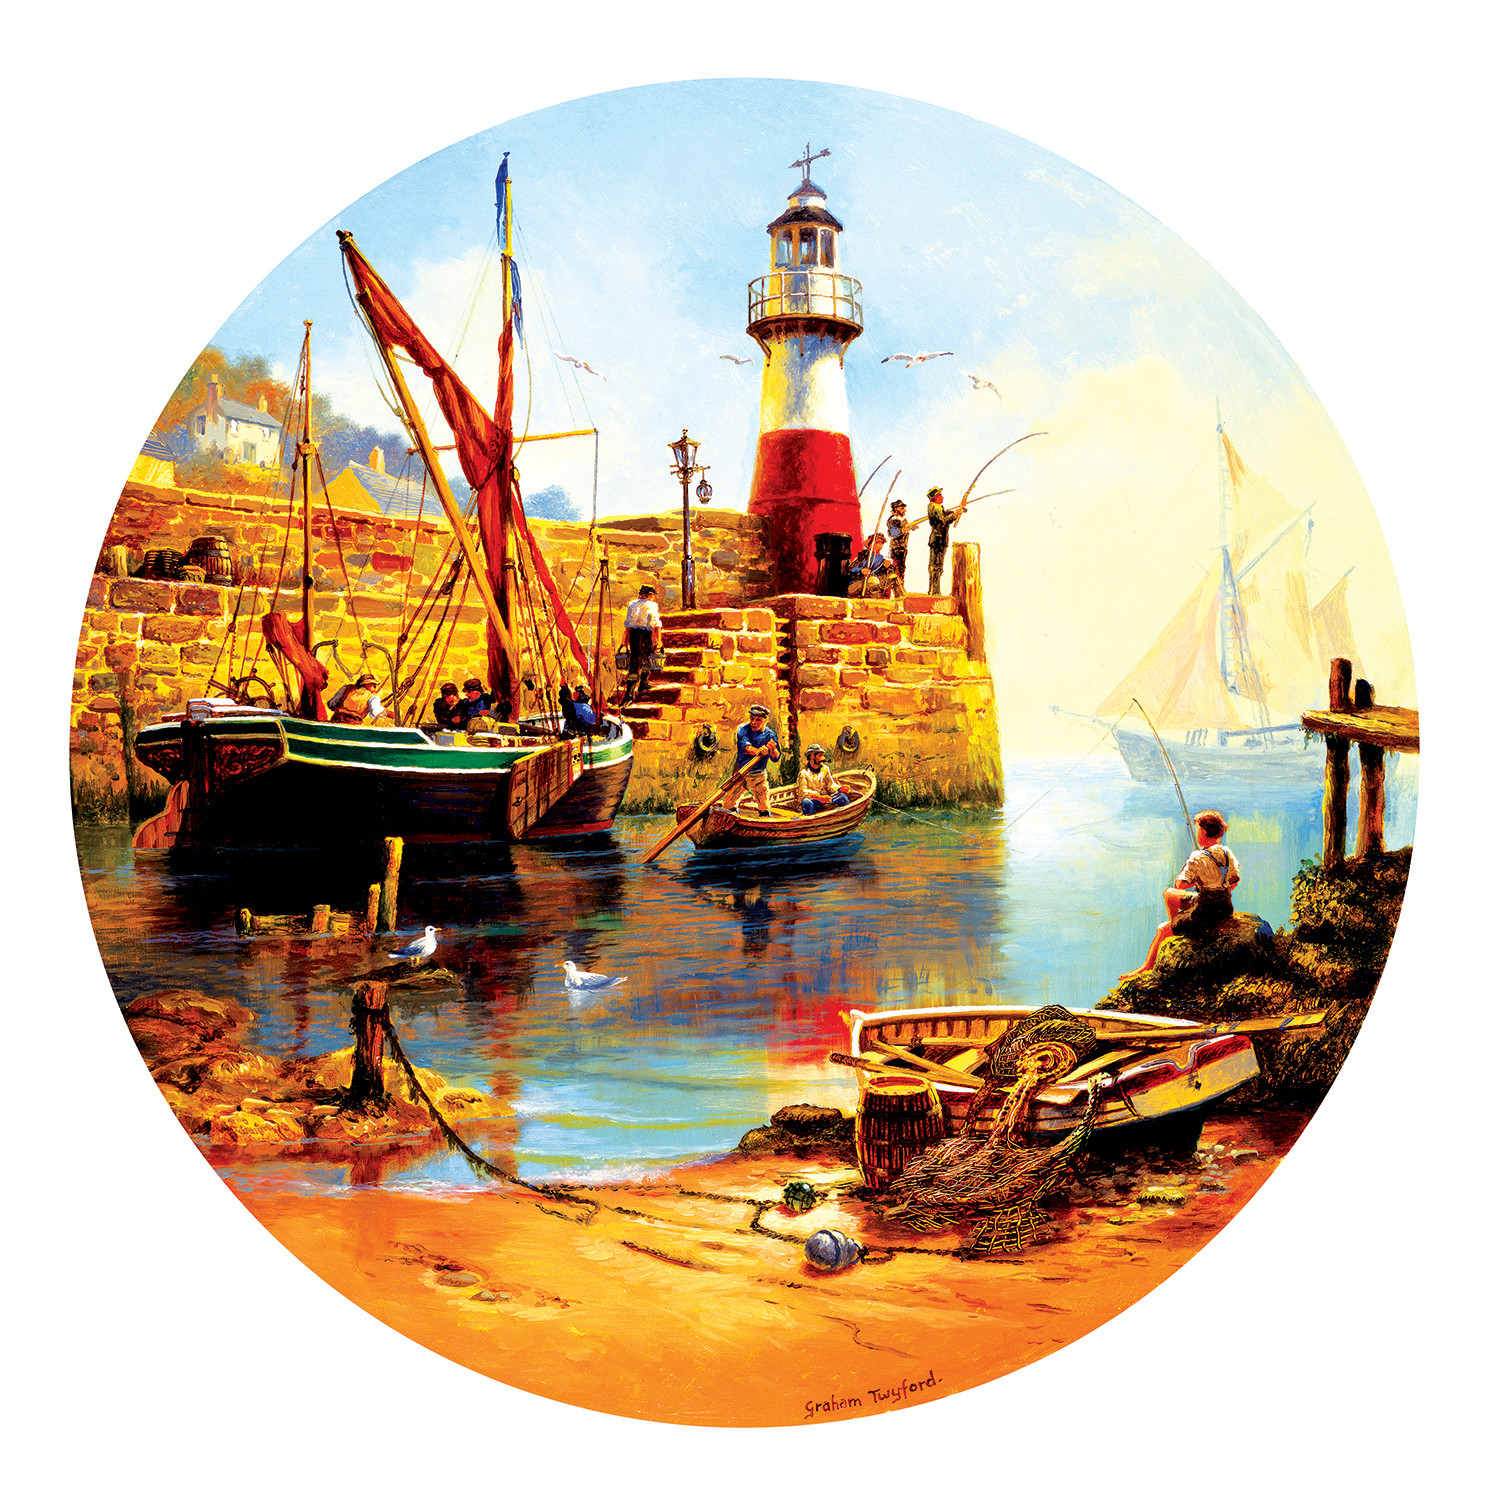 At the Harbor - Scratch and Dent Lighthouses Shaped Puzzle